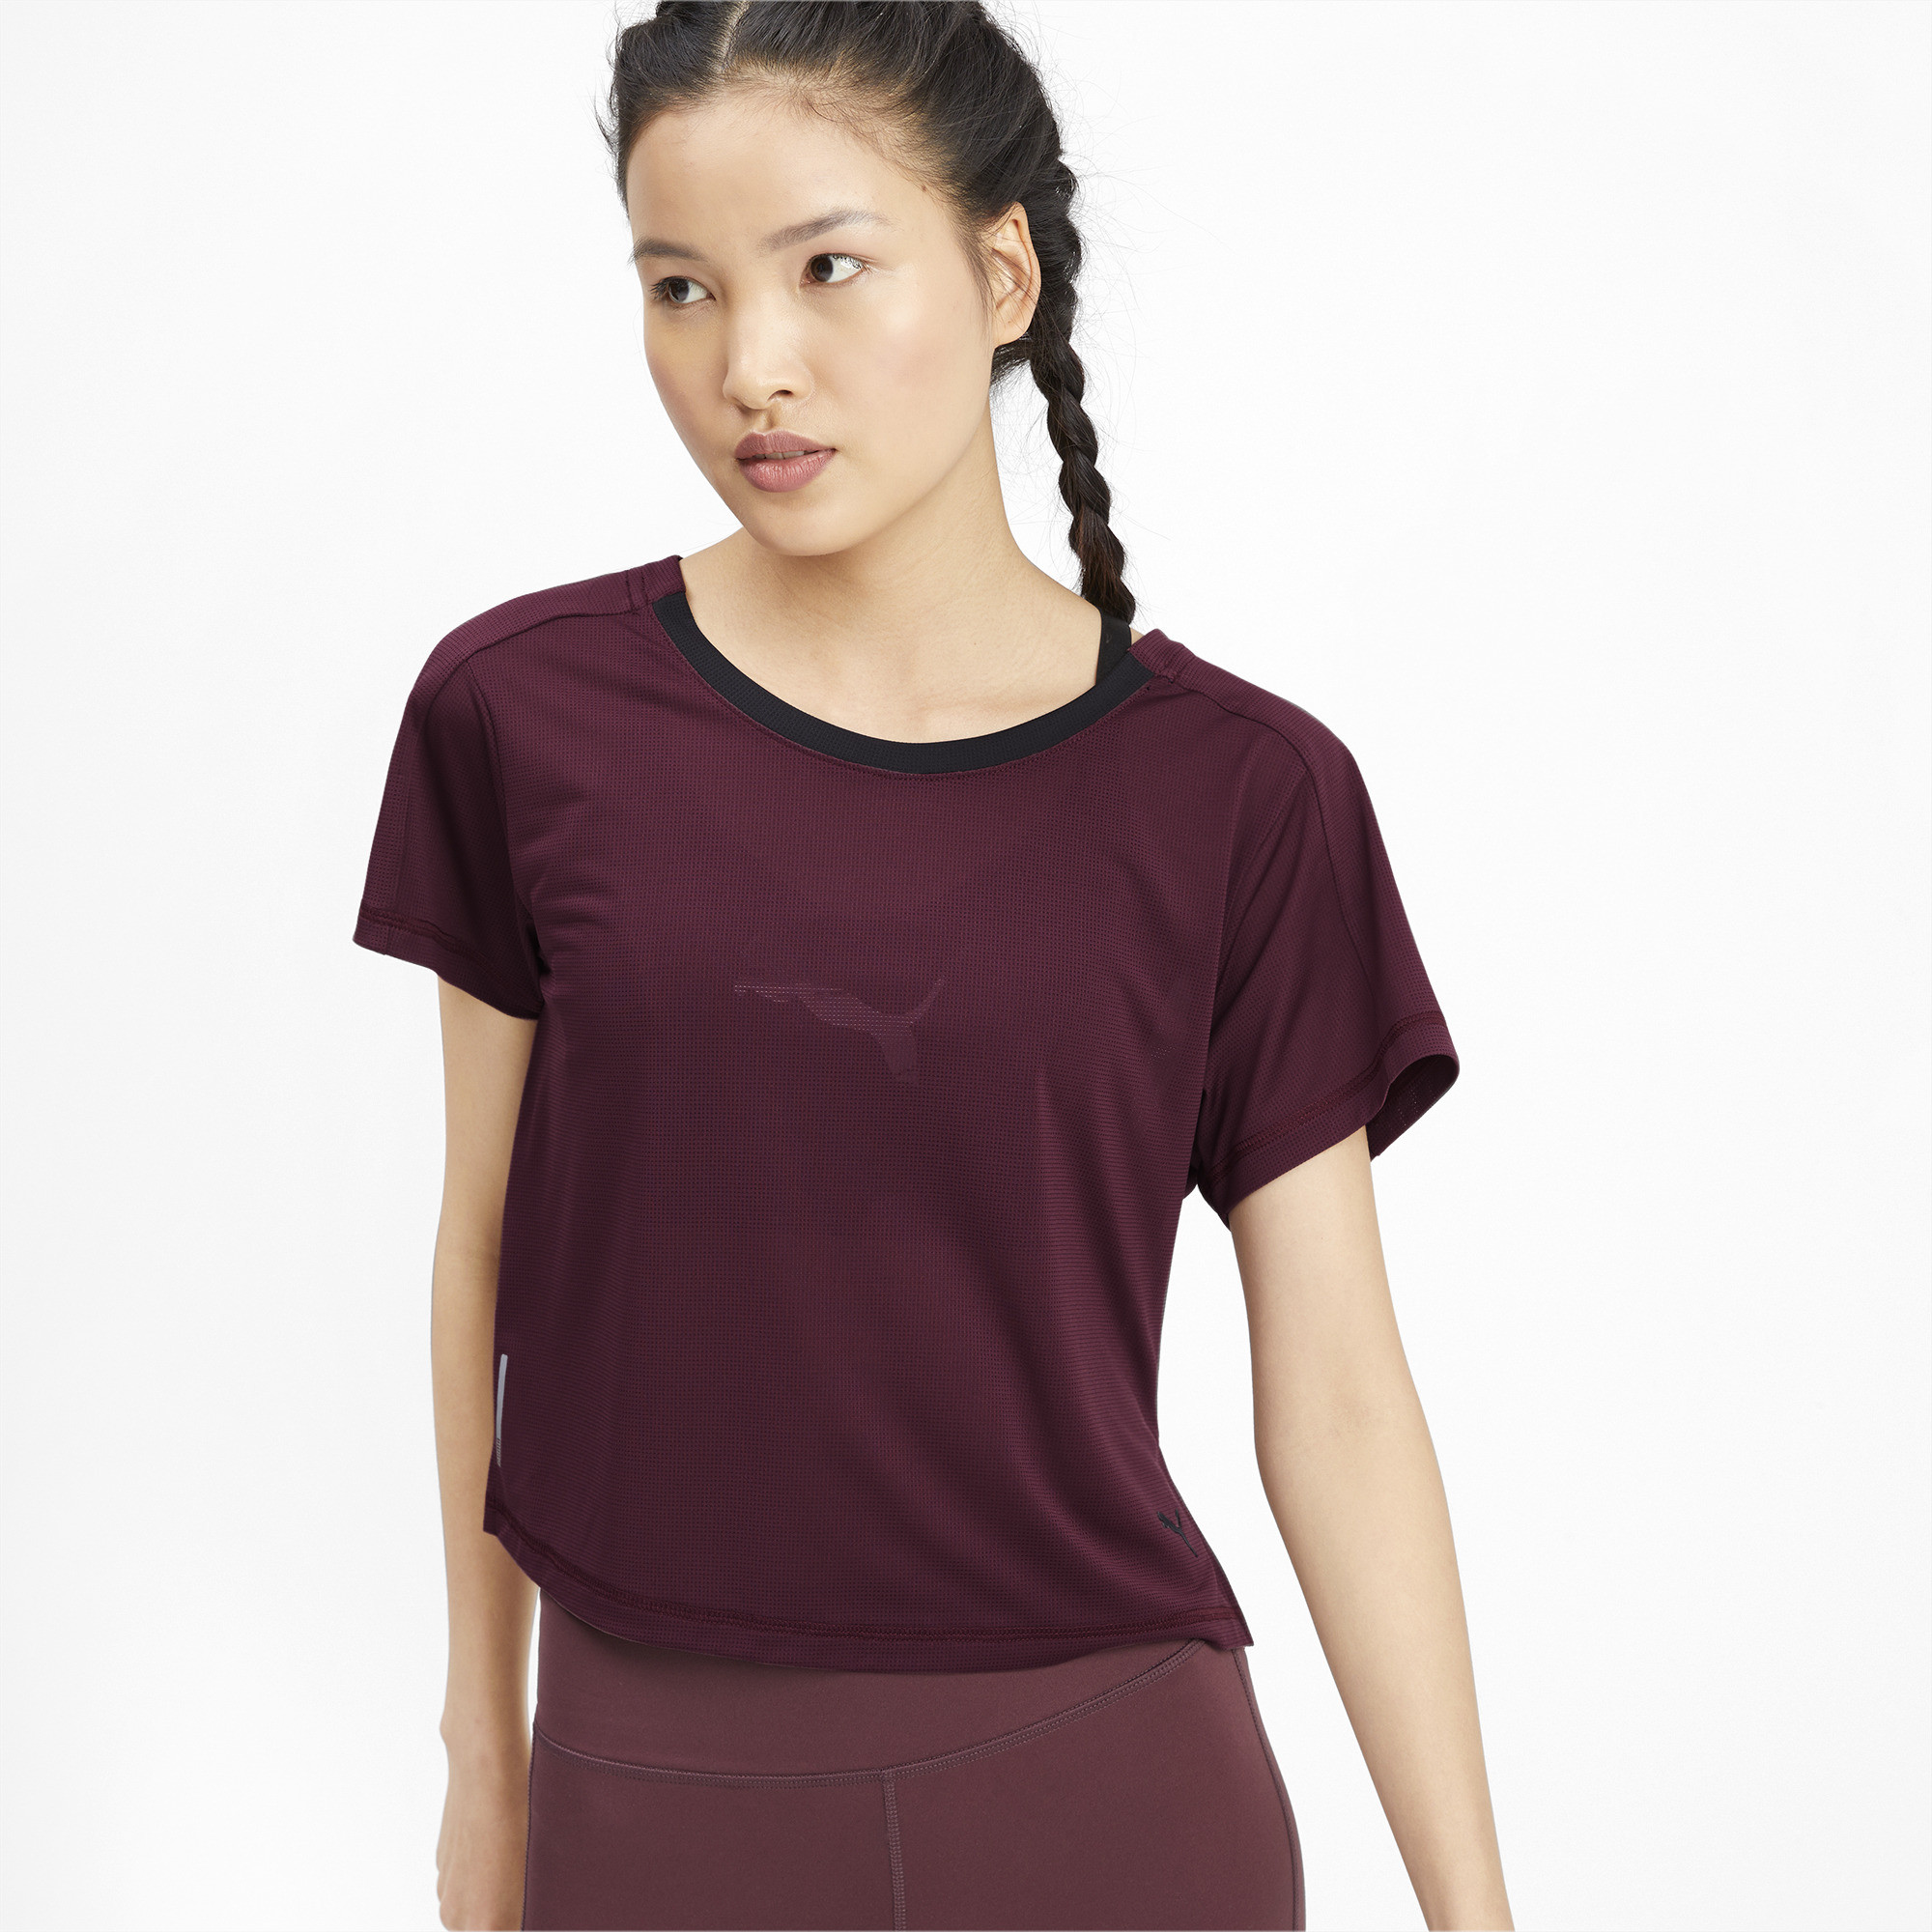 PUMA-Logo-Graphic-Women-039-s-Tee-Women-Tee-Training thumbnail 4